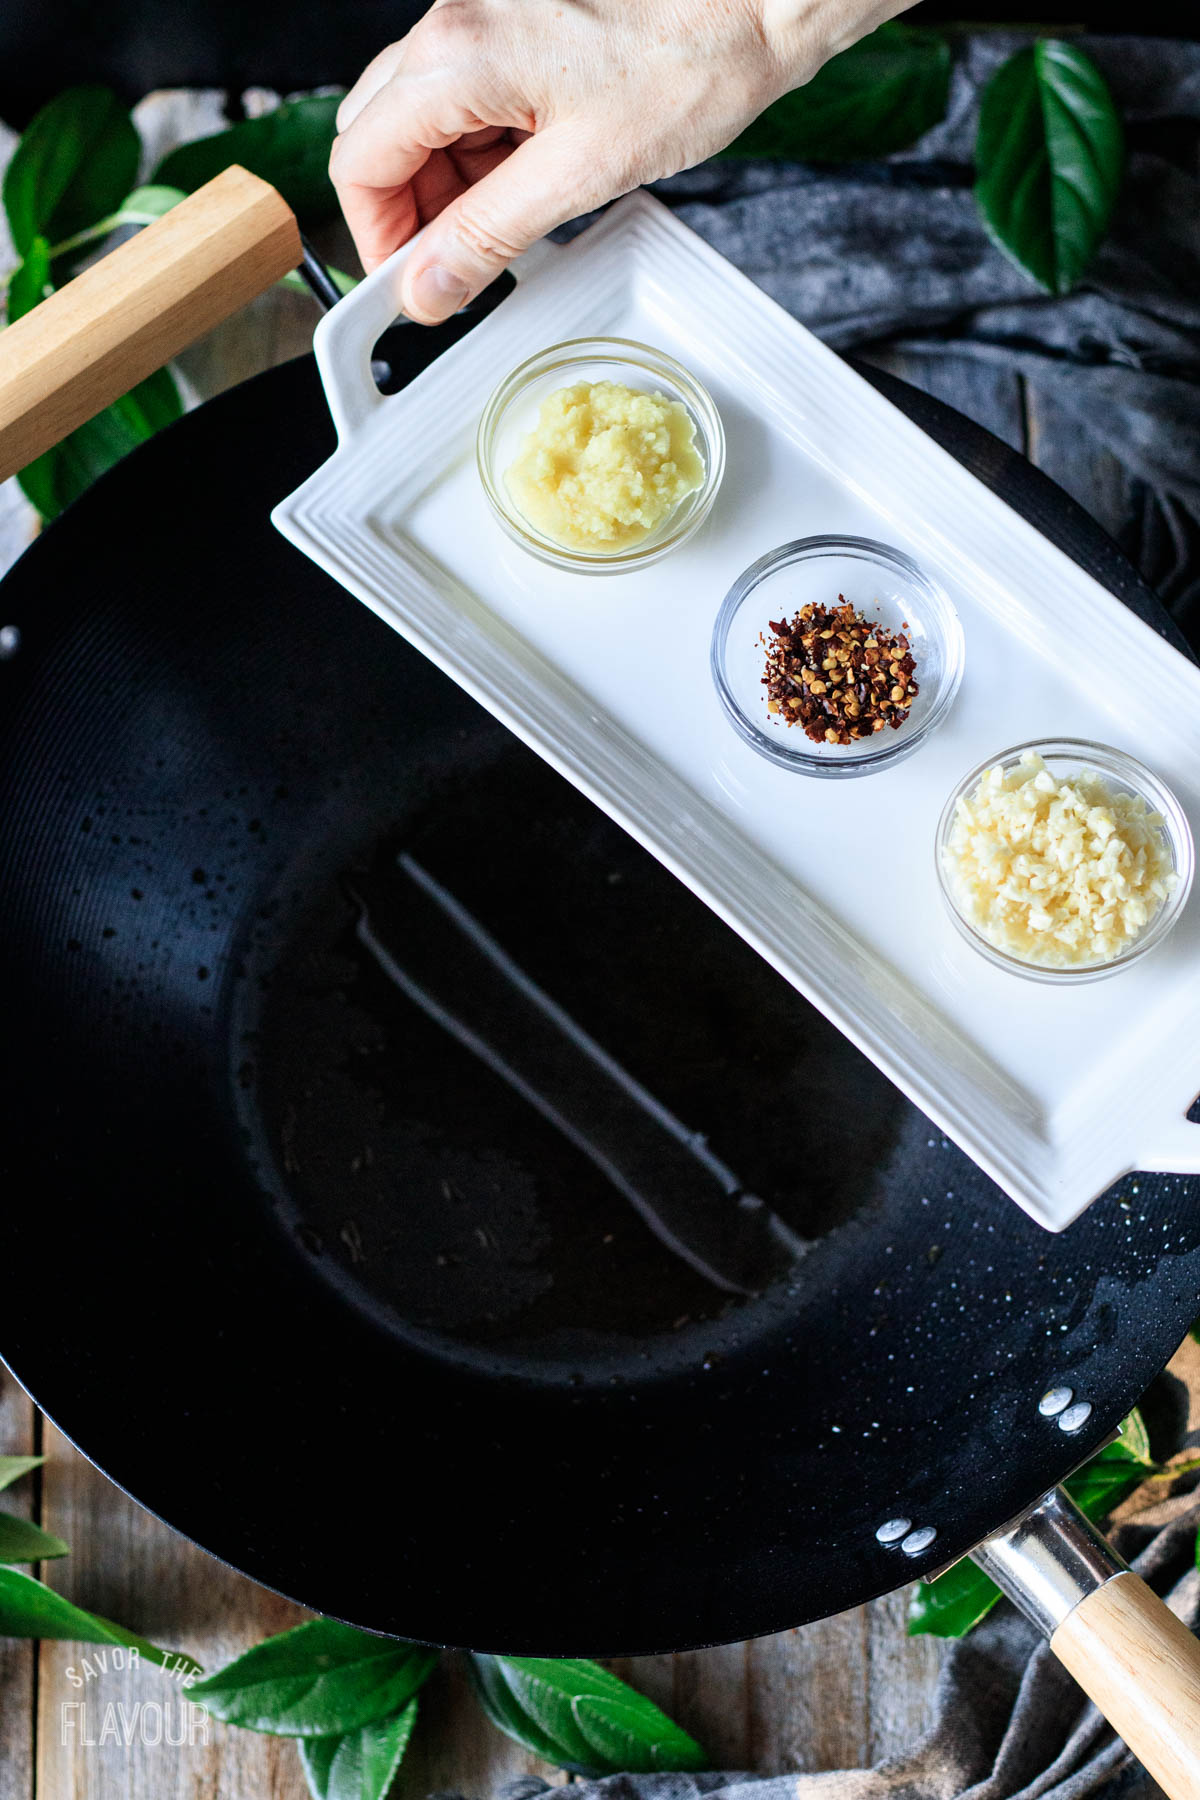 person holding a tray with small bowls of spices and aromatics